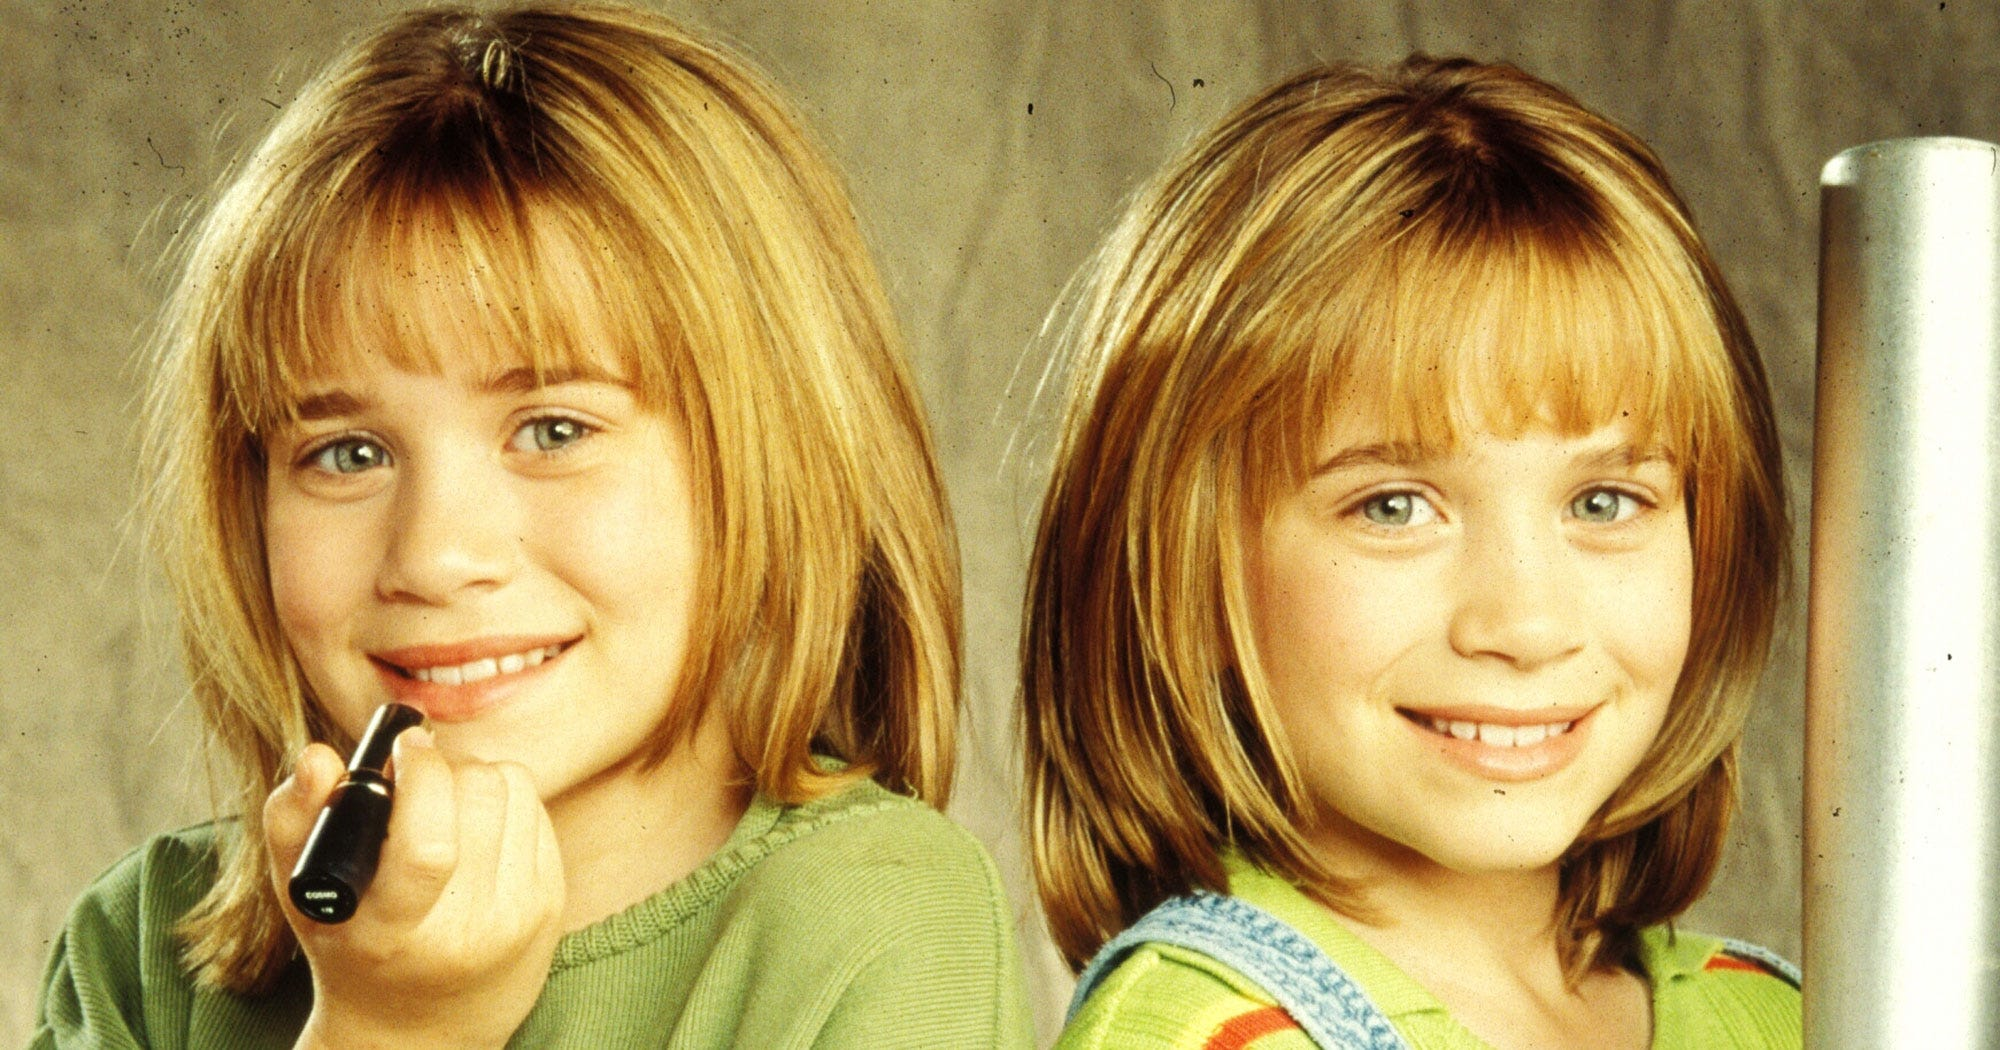 Mary Kate And Ashley Movies Olsen Twins Films Ranked